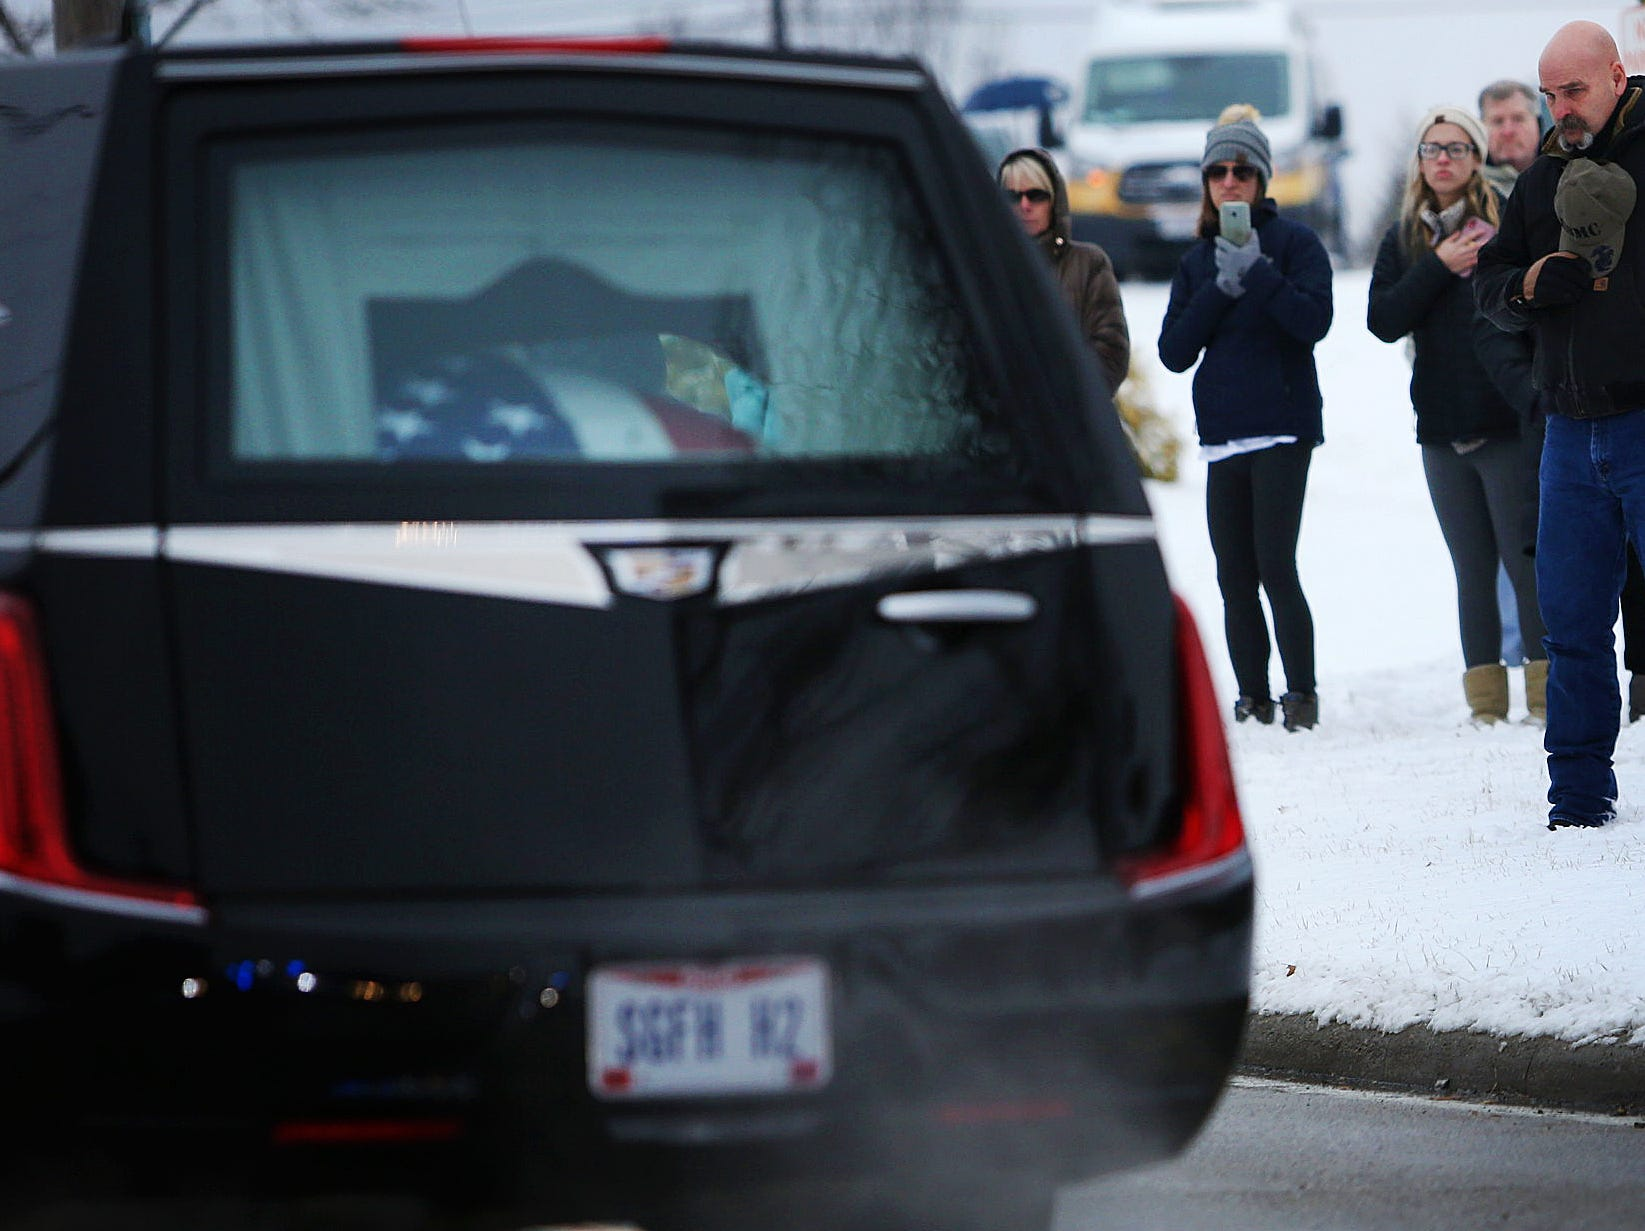 The hearse carrying Colerain Township Police Officer Dale Woods passes by the Colerain Community Center the Colerain Township Community Center, Saturday, Jan. 12, 2019. Woods, 46, who died Monday after being Hill by a pickup truck Jan. 4 while working at the scene of a crash.